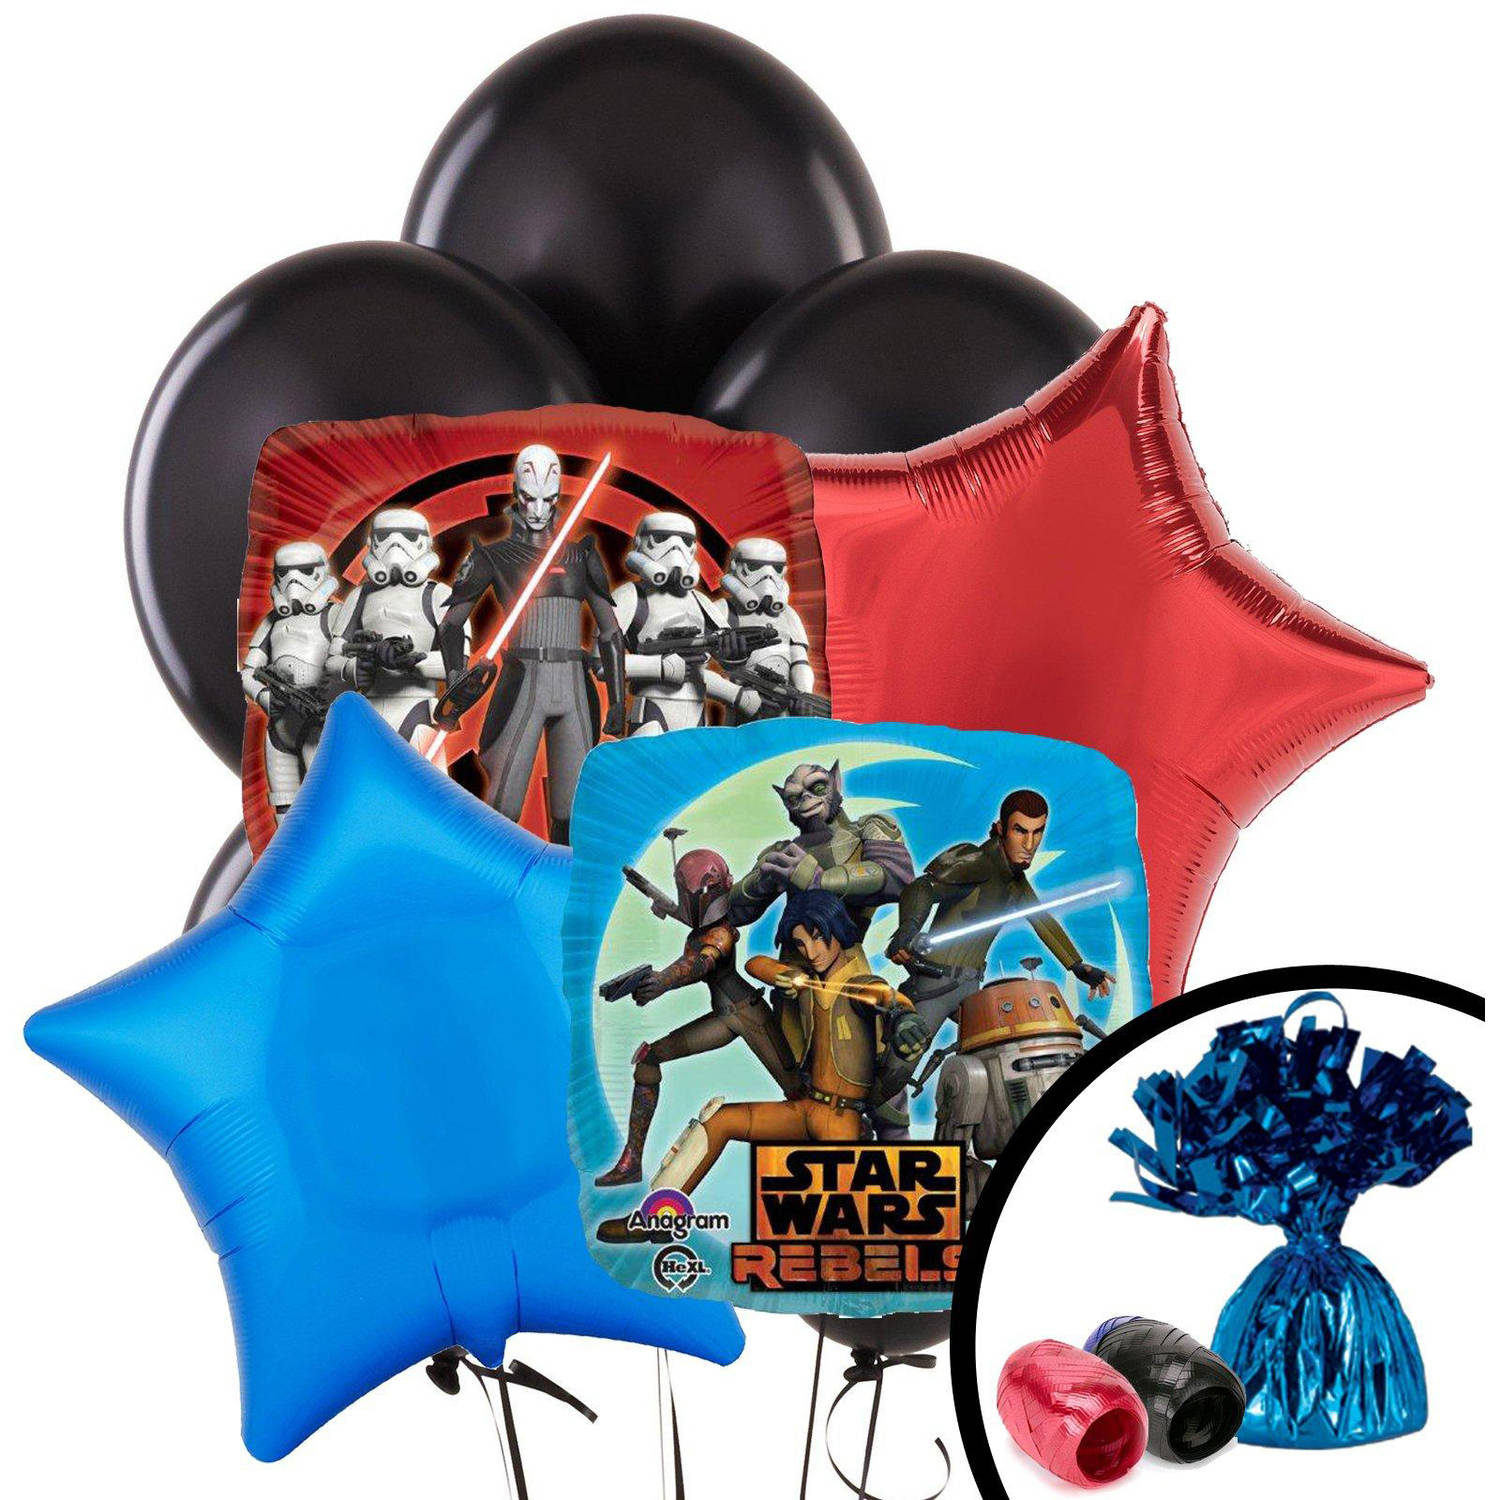 Star Wars Rebels Balloon Bouquet